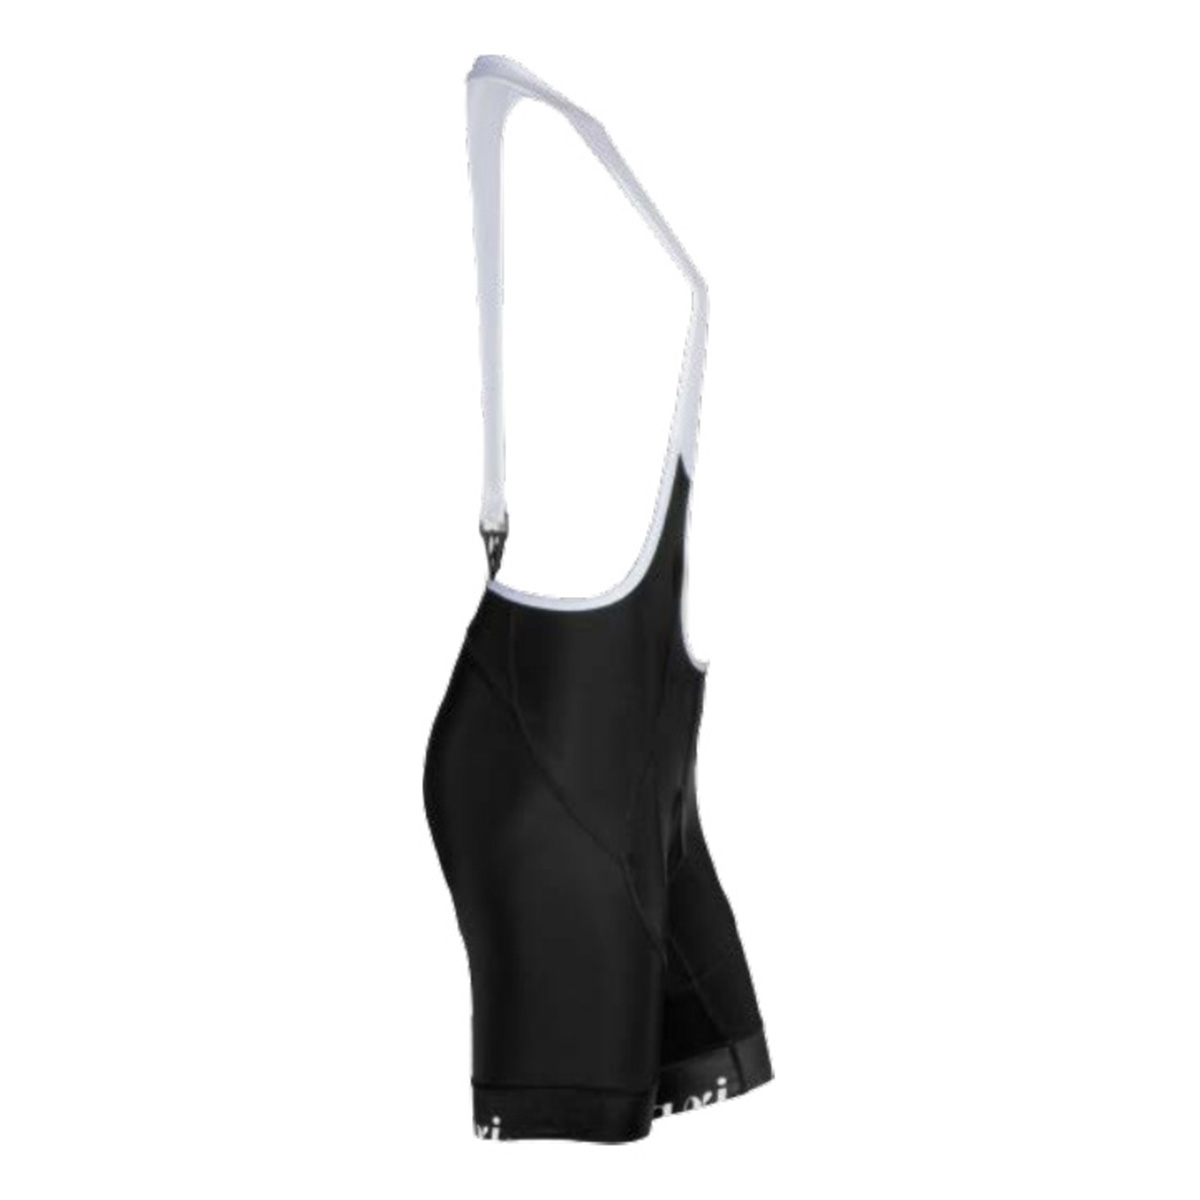 Canari Cyclewear 2016 Men's Amidala Cycling Bib Shorts 2097 (Black L) by Canari Cyclewear